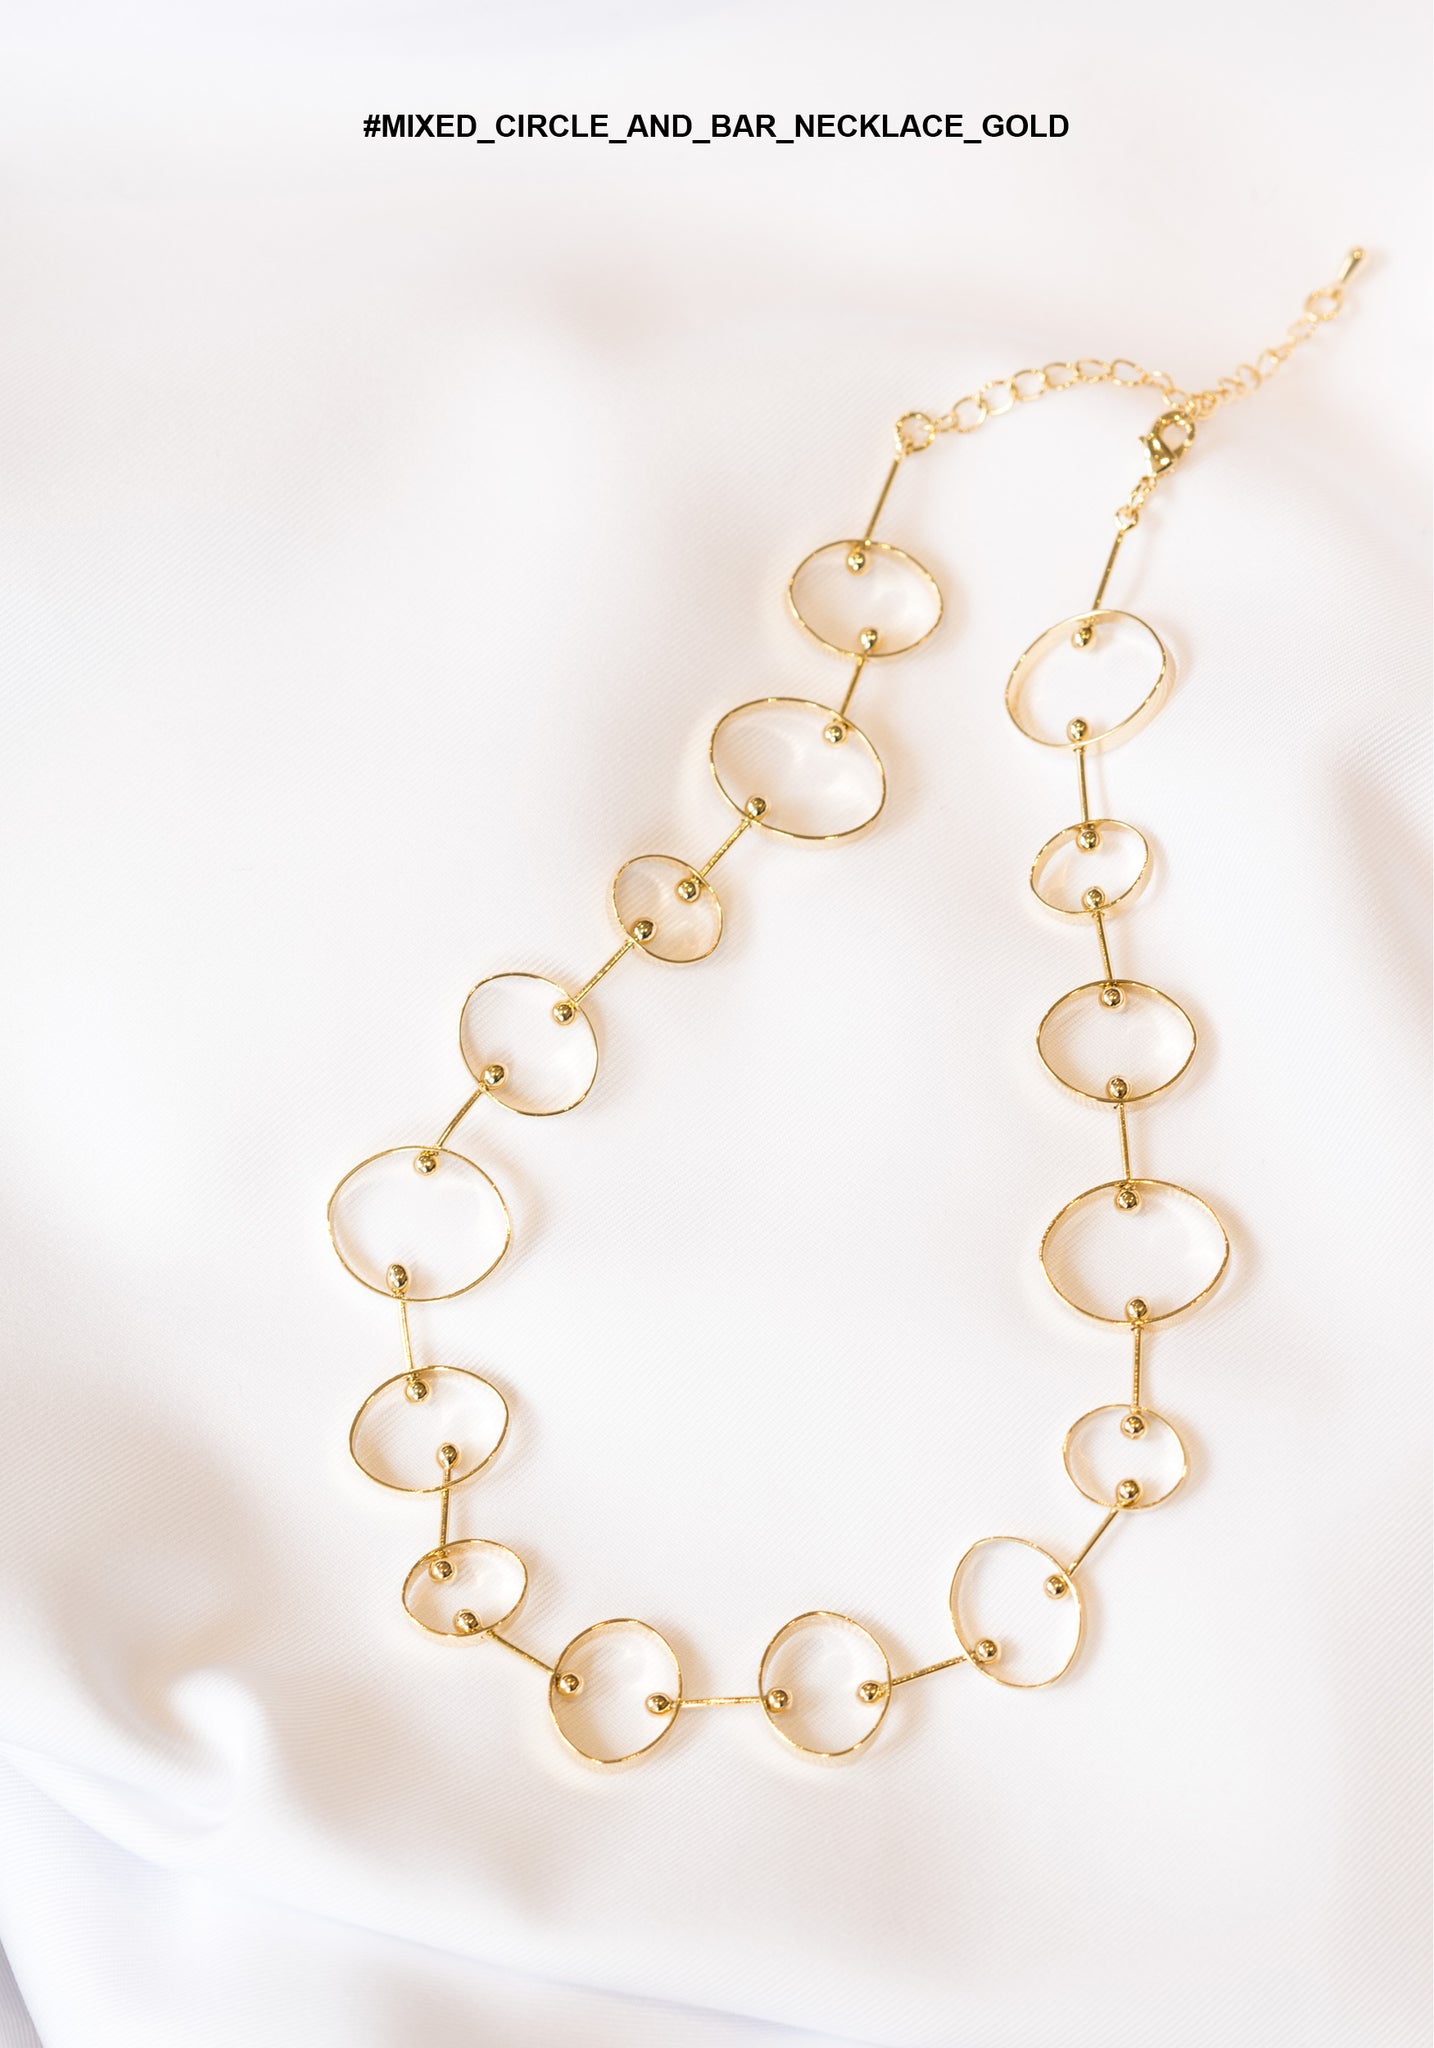 Mixed Circle And Bar Necklace Gold - whoami